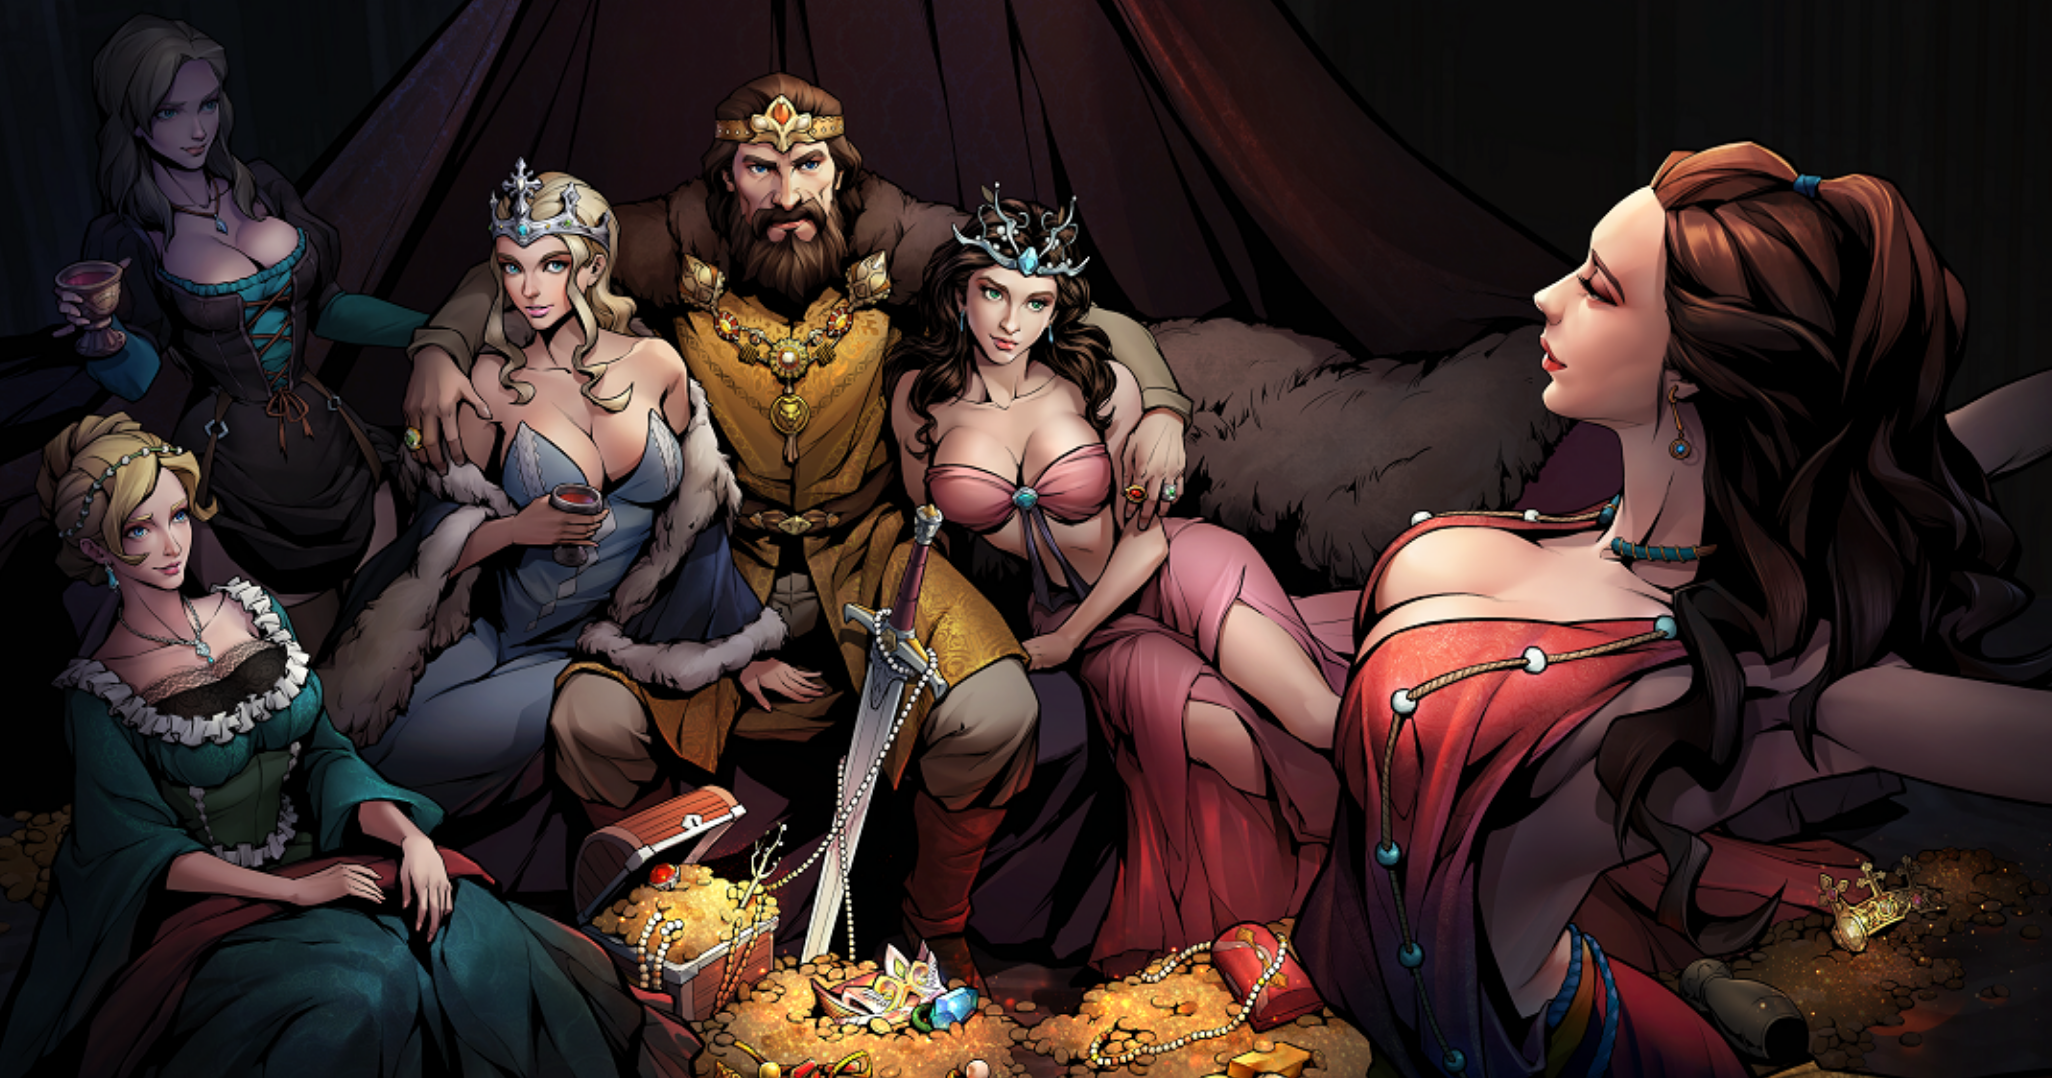 How to get free gems in King's Throne: Game of Lust